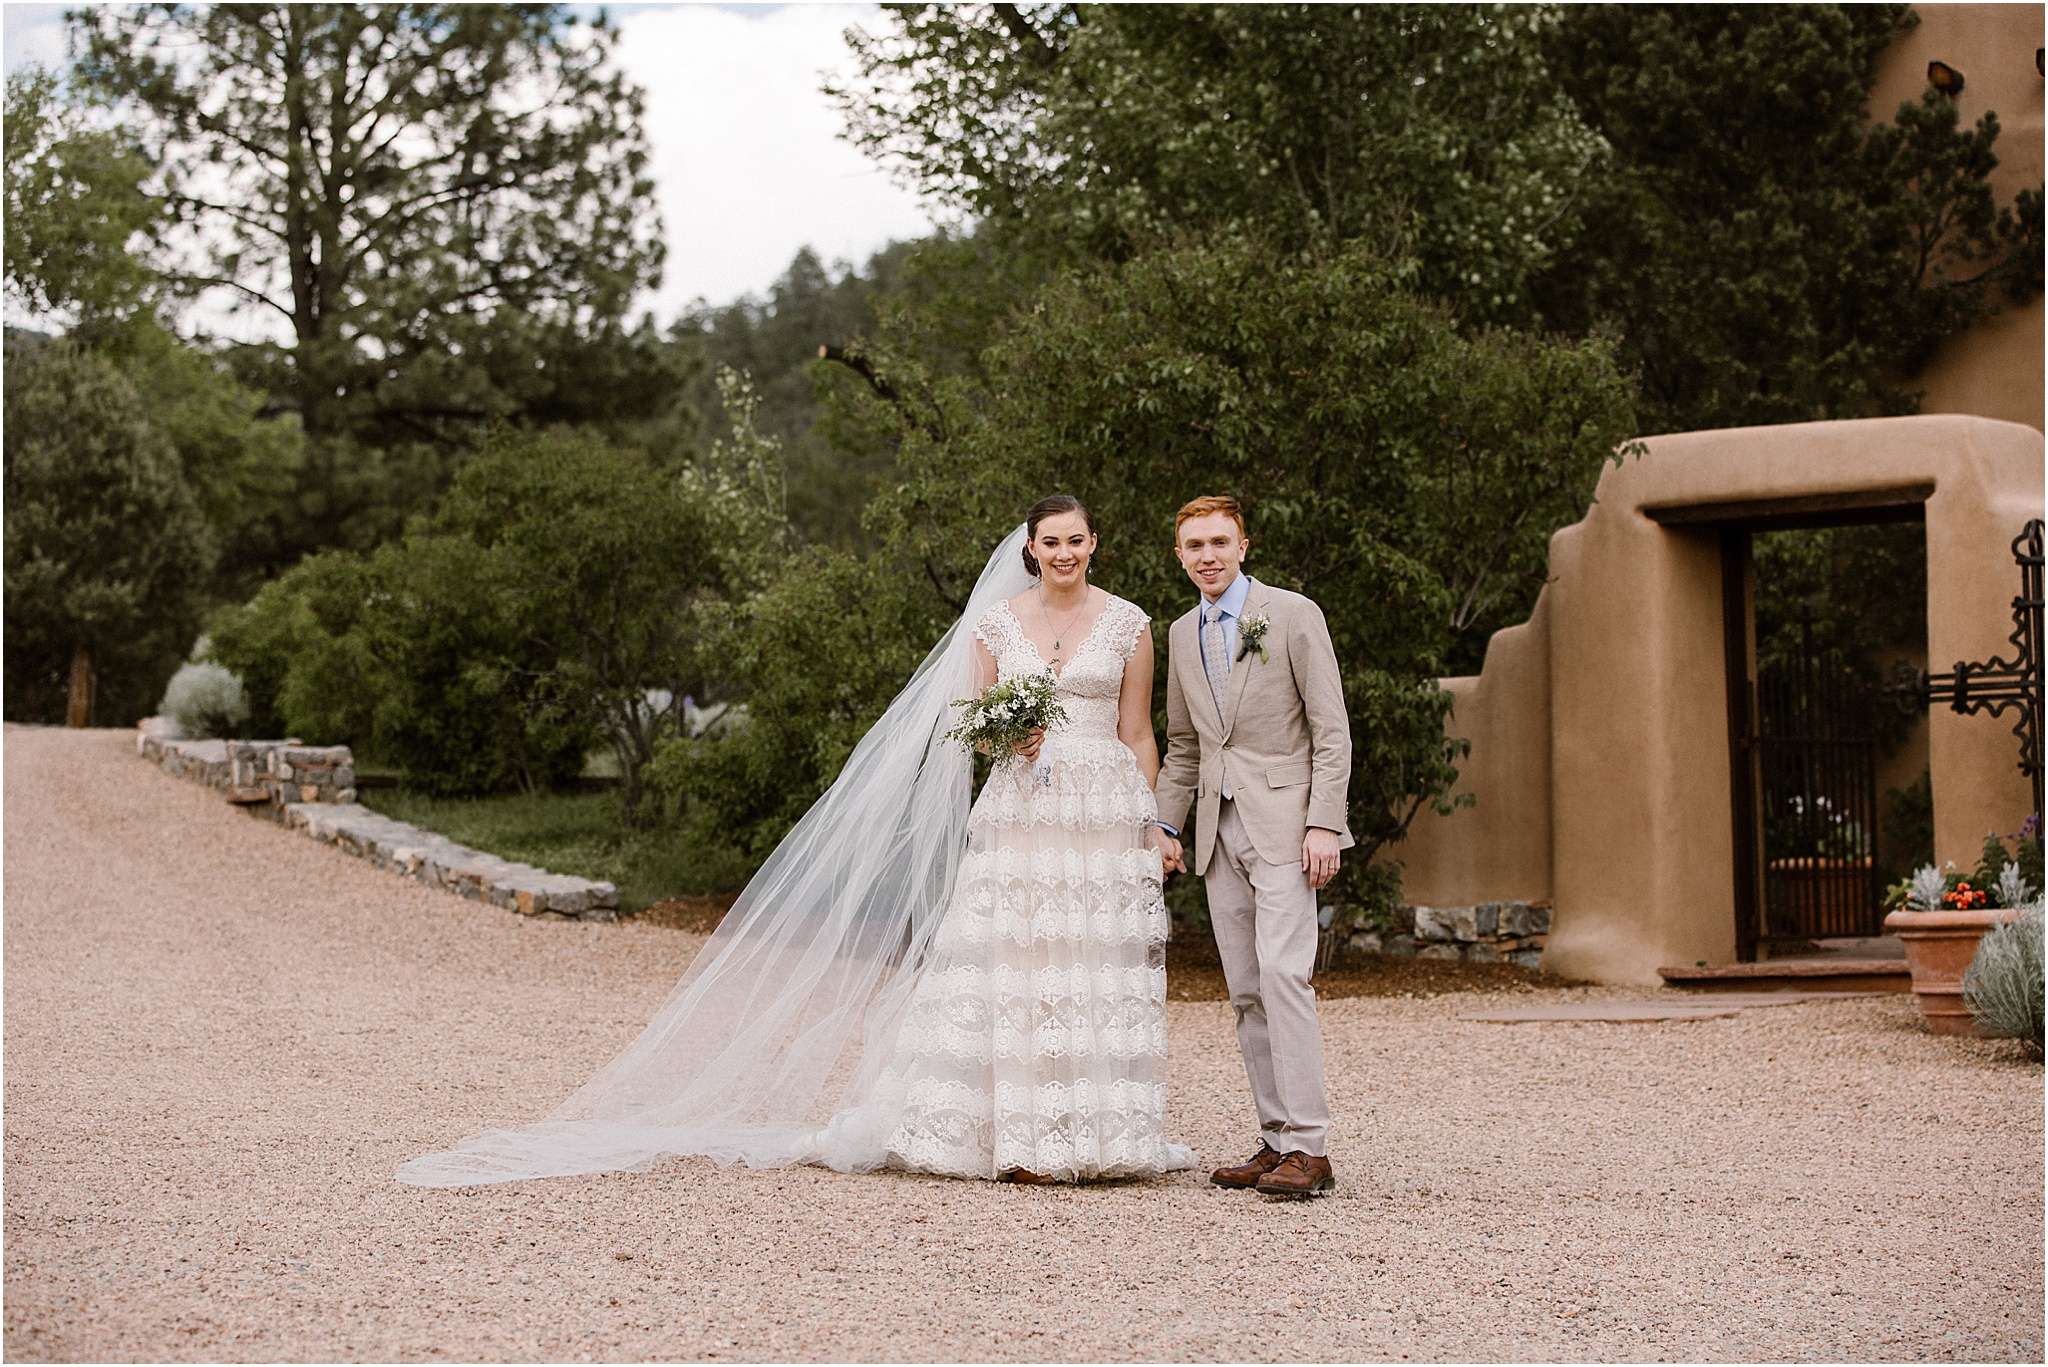 AMELIA_JASON_SANTA FE_ WEDDING_BLUE ROSE PHOTOGRAPHY85